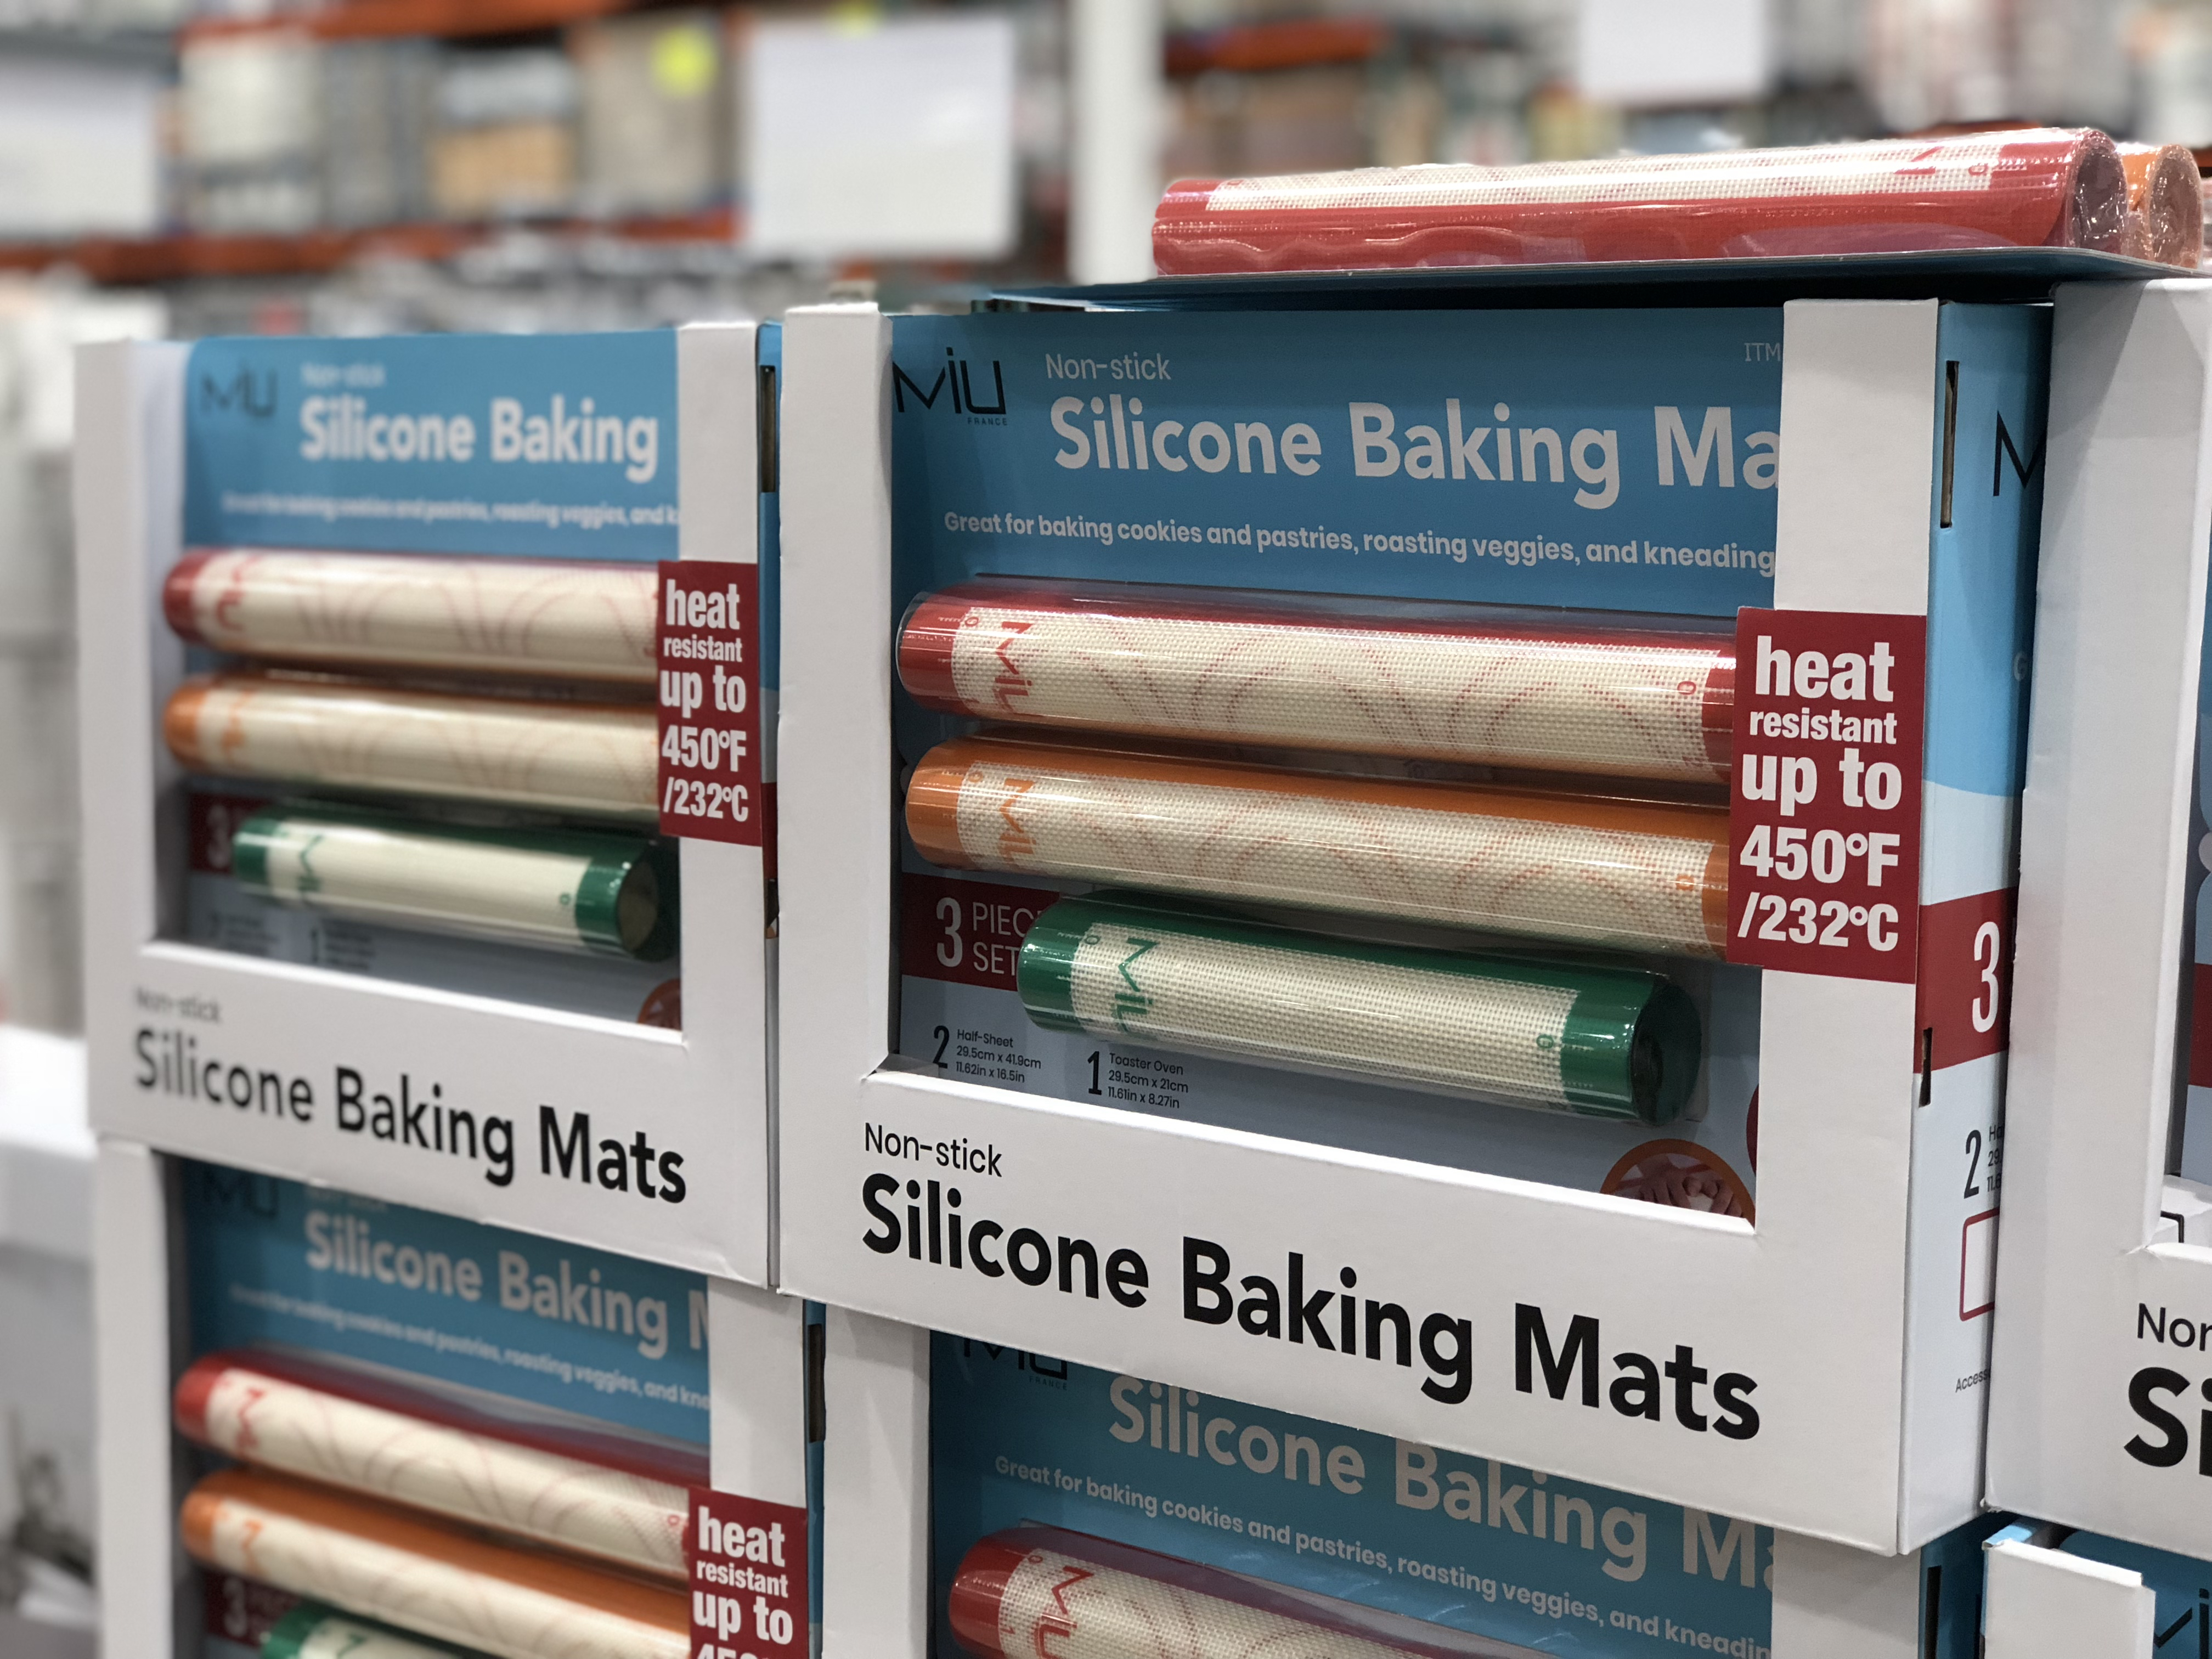 MIU Silicone Baking Mats at Costco